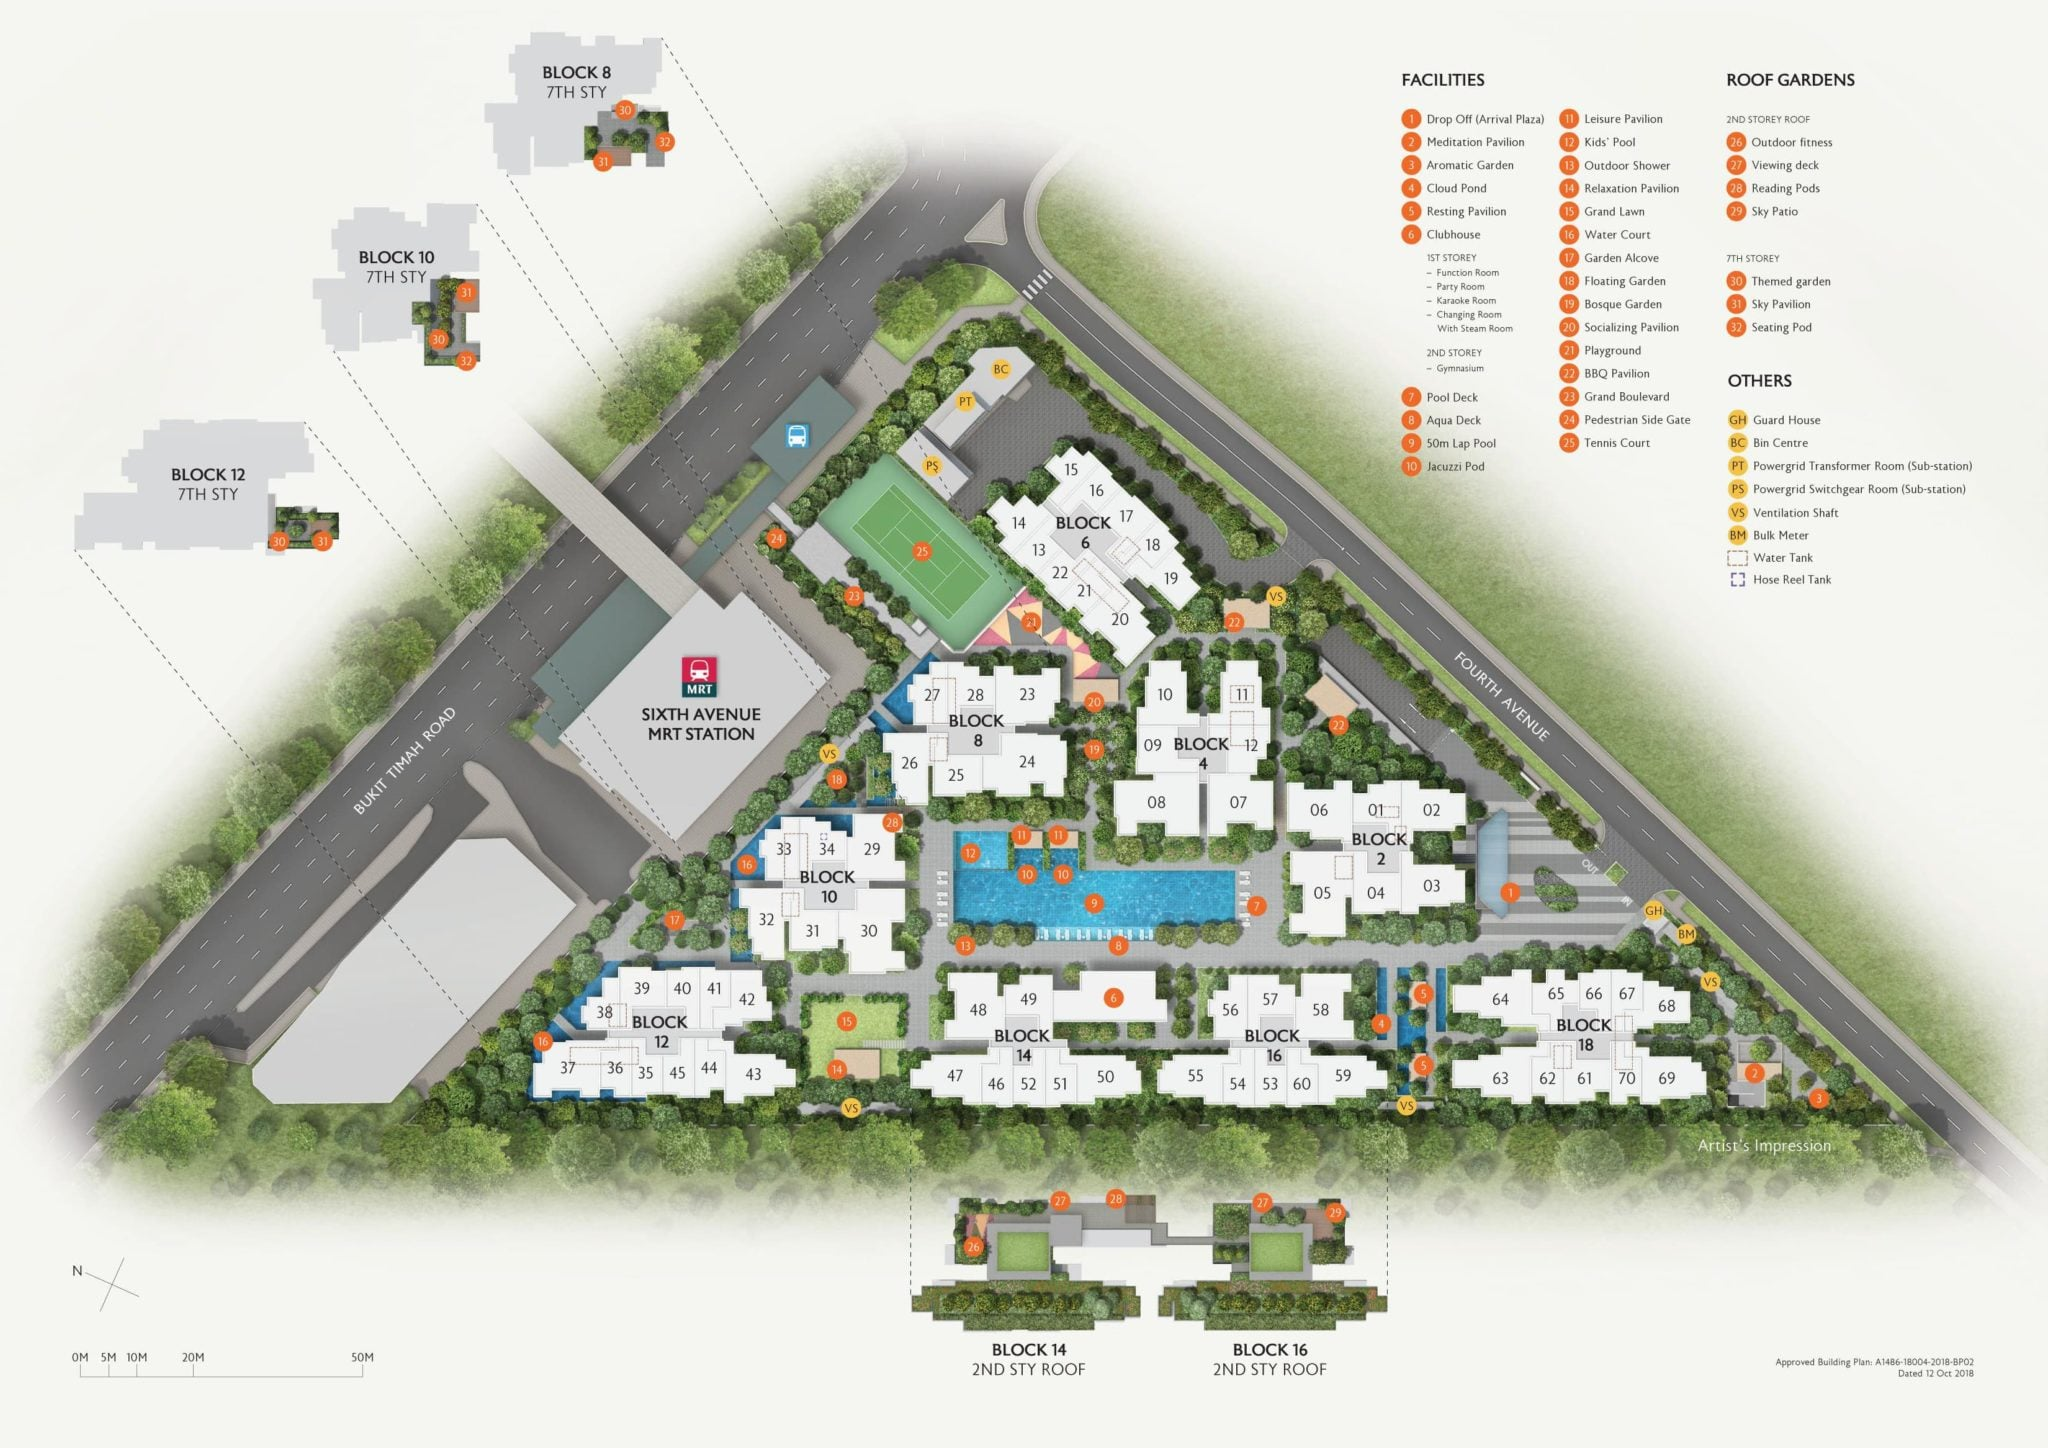 fourth-avenue-sitemap-facilities-2